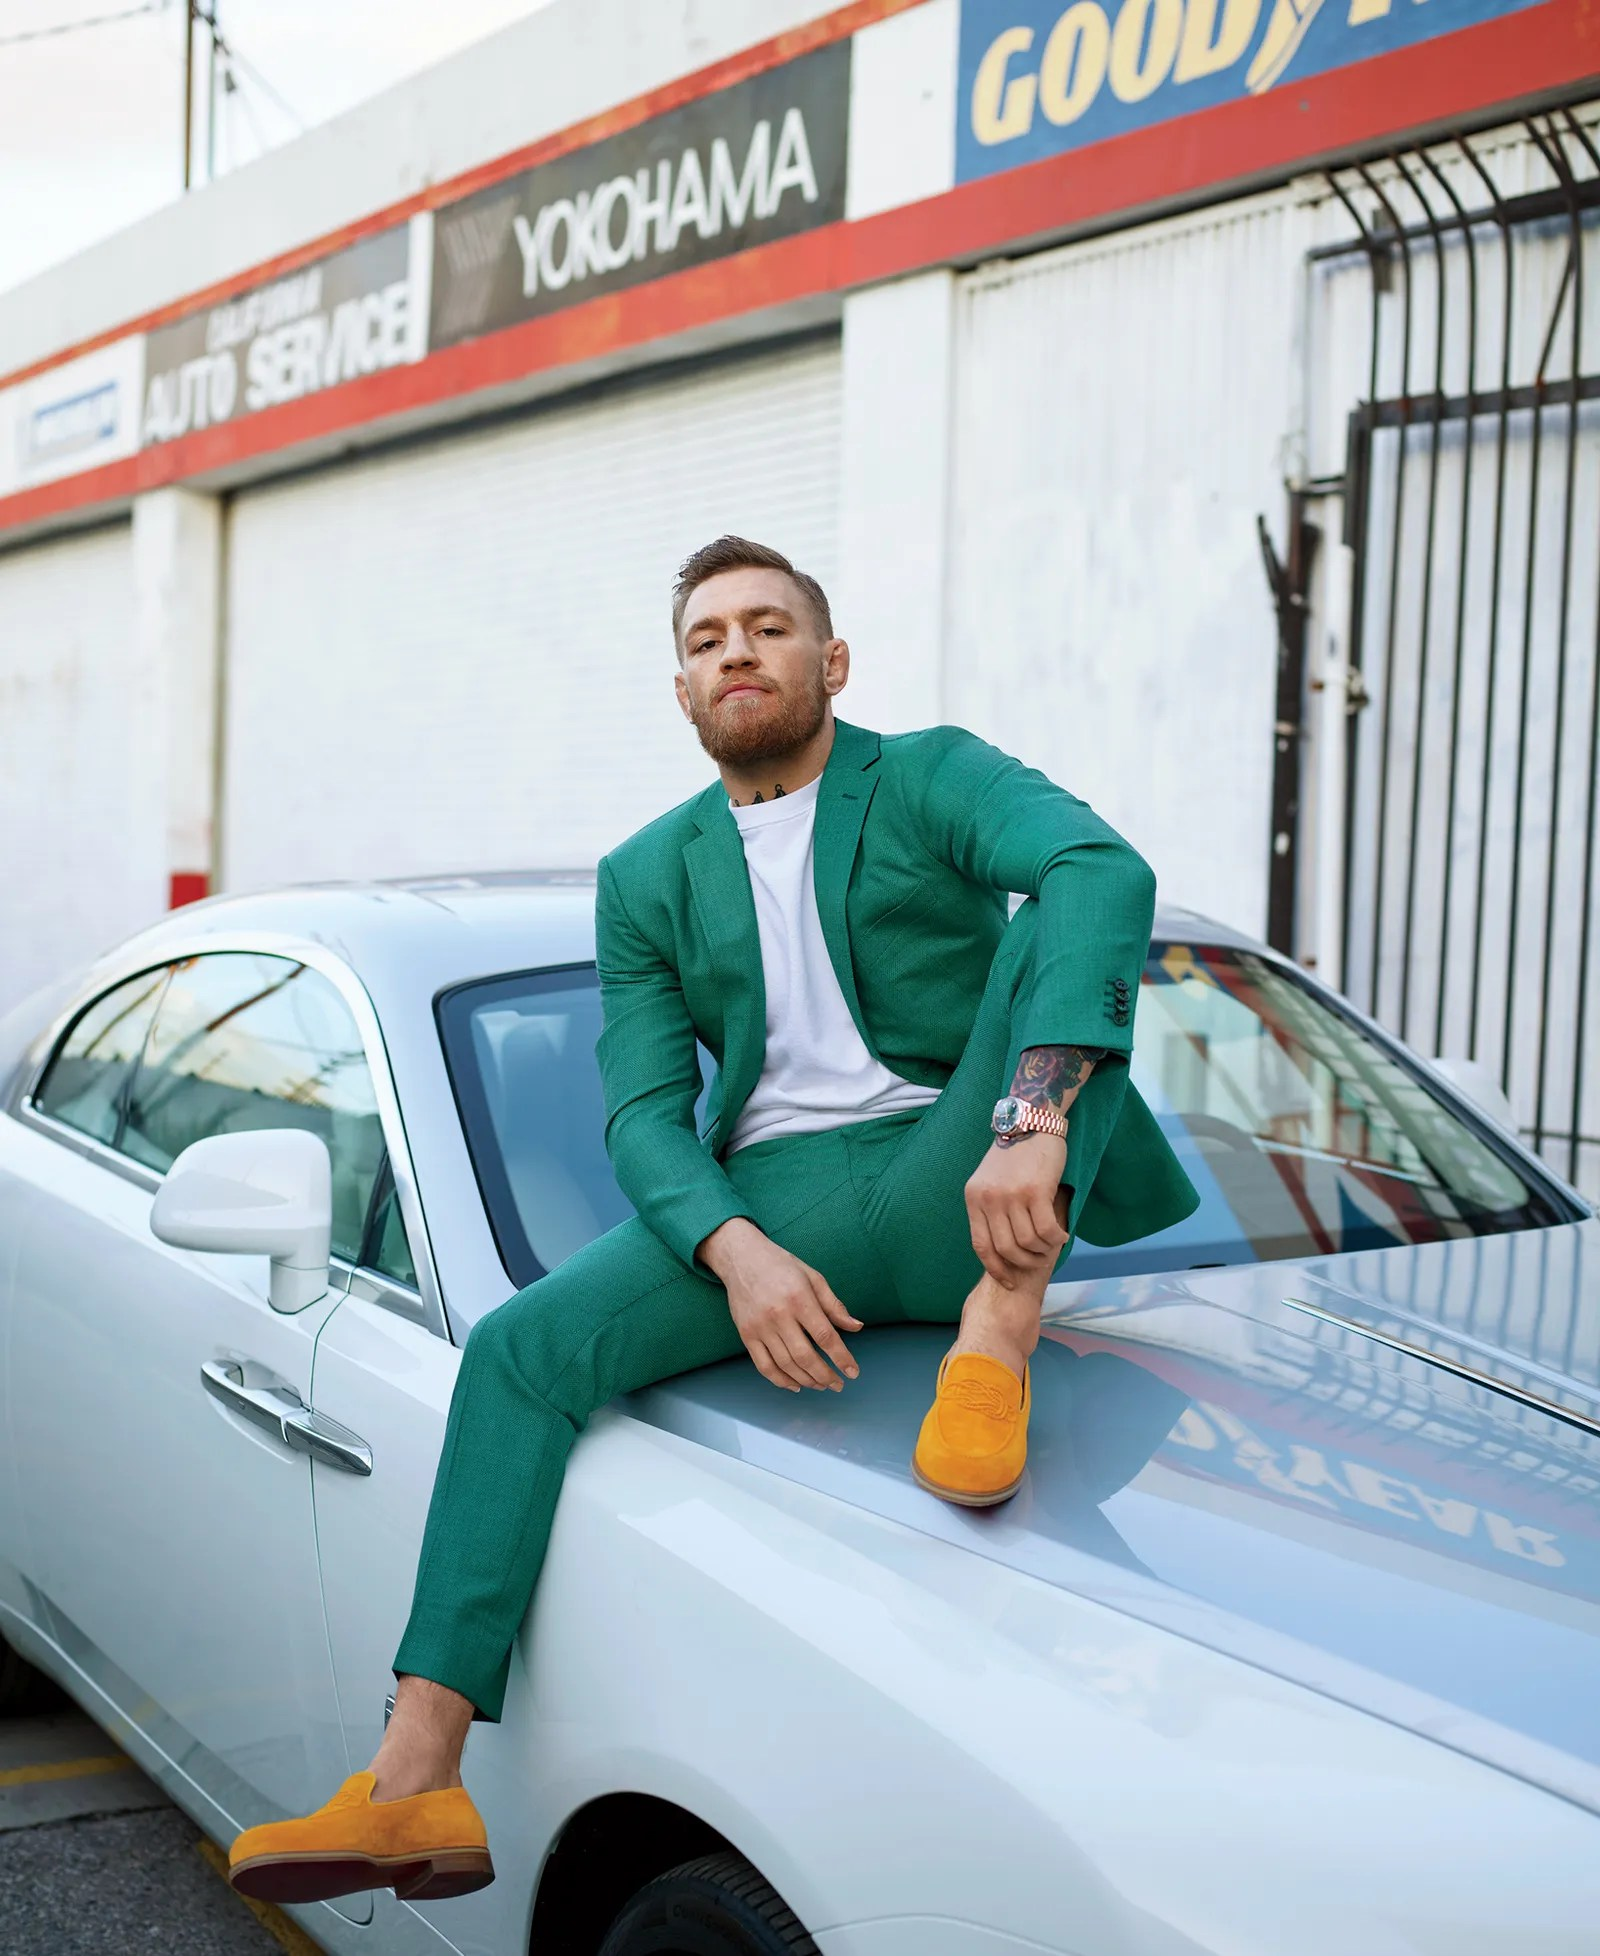 Conor McGregor-1317-GQ-FECM07-01.jpg